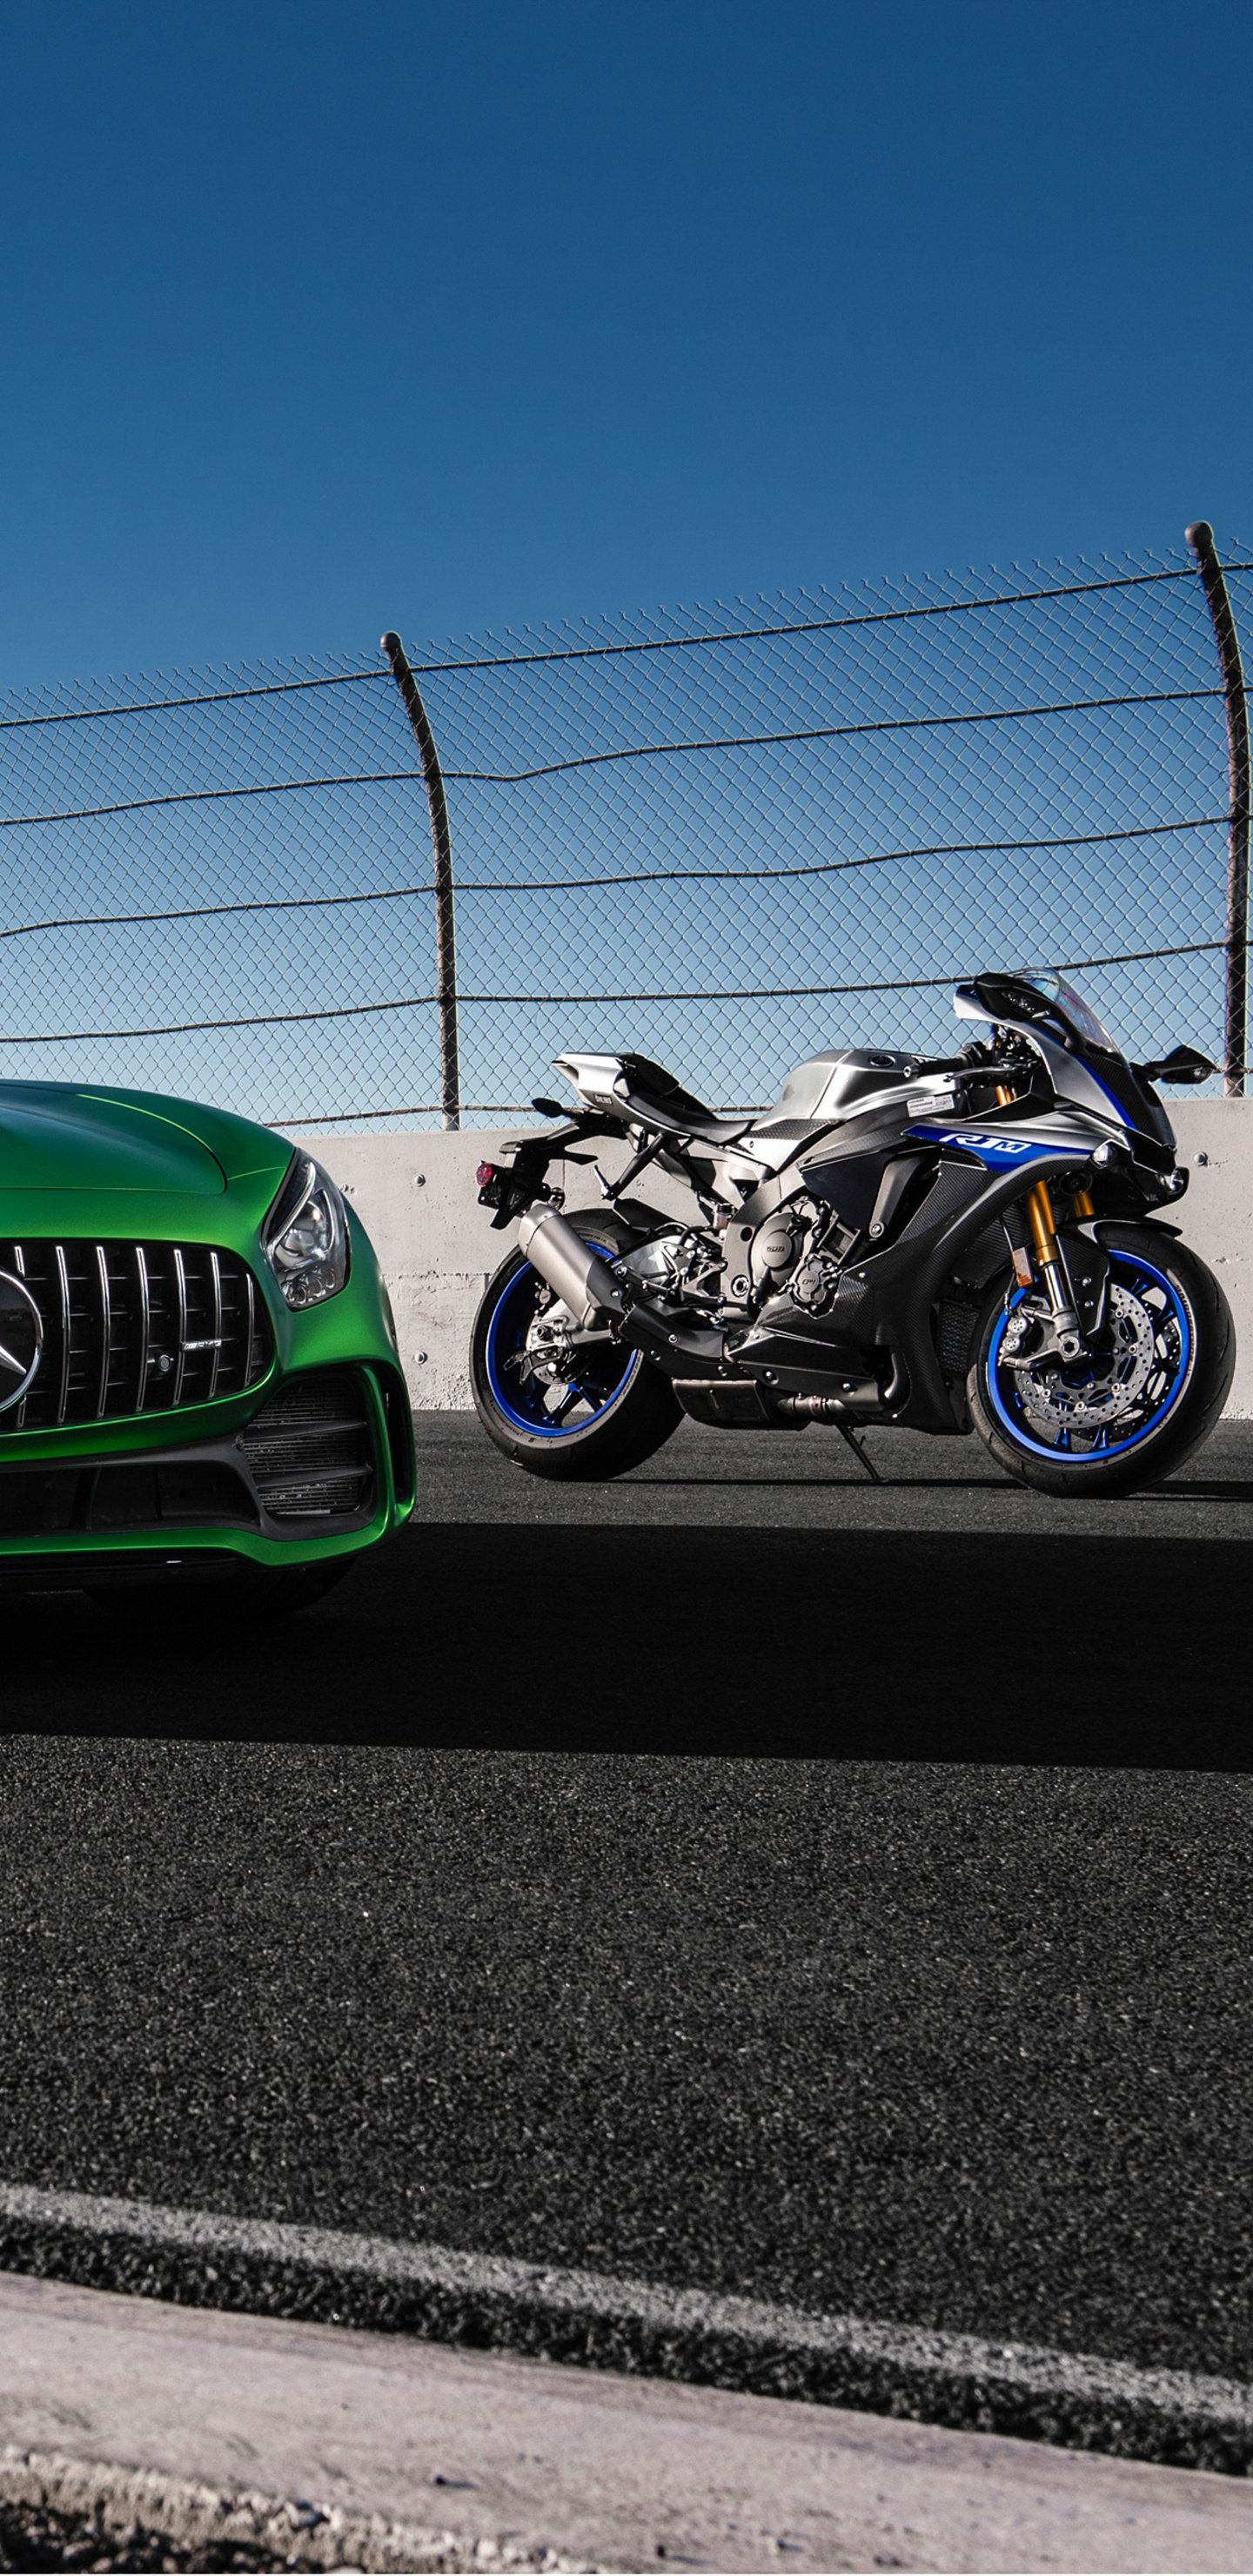 1440x2960 Mercedes Amg Gtr And Yamaha R1 Samsung Galaxy Note 9 8 S9 S8 S8 Qhd Hd 4k Wallpapers Images Backgrounds Photos And Pictures